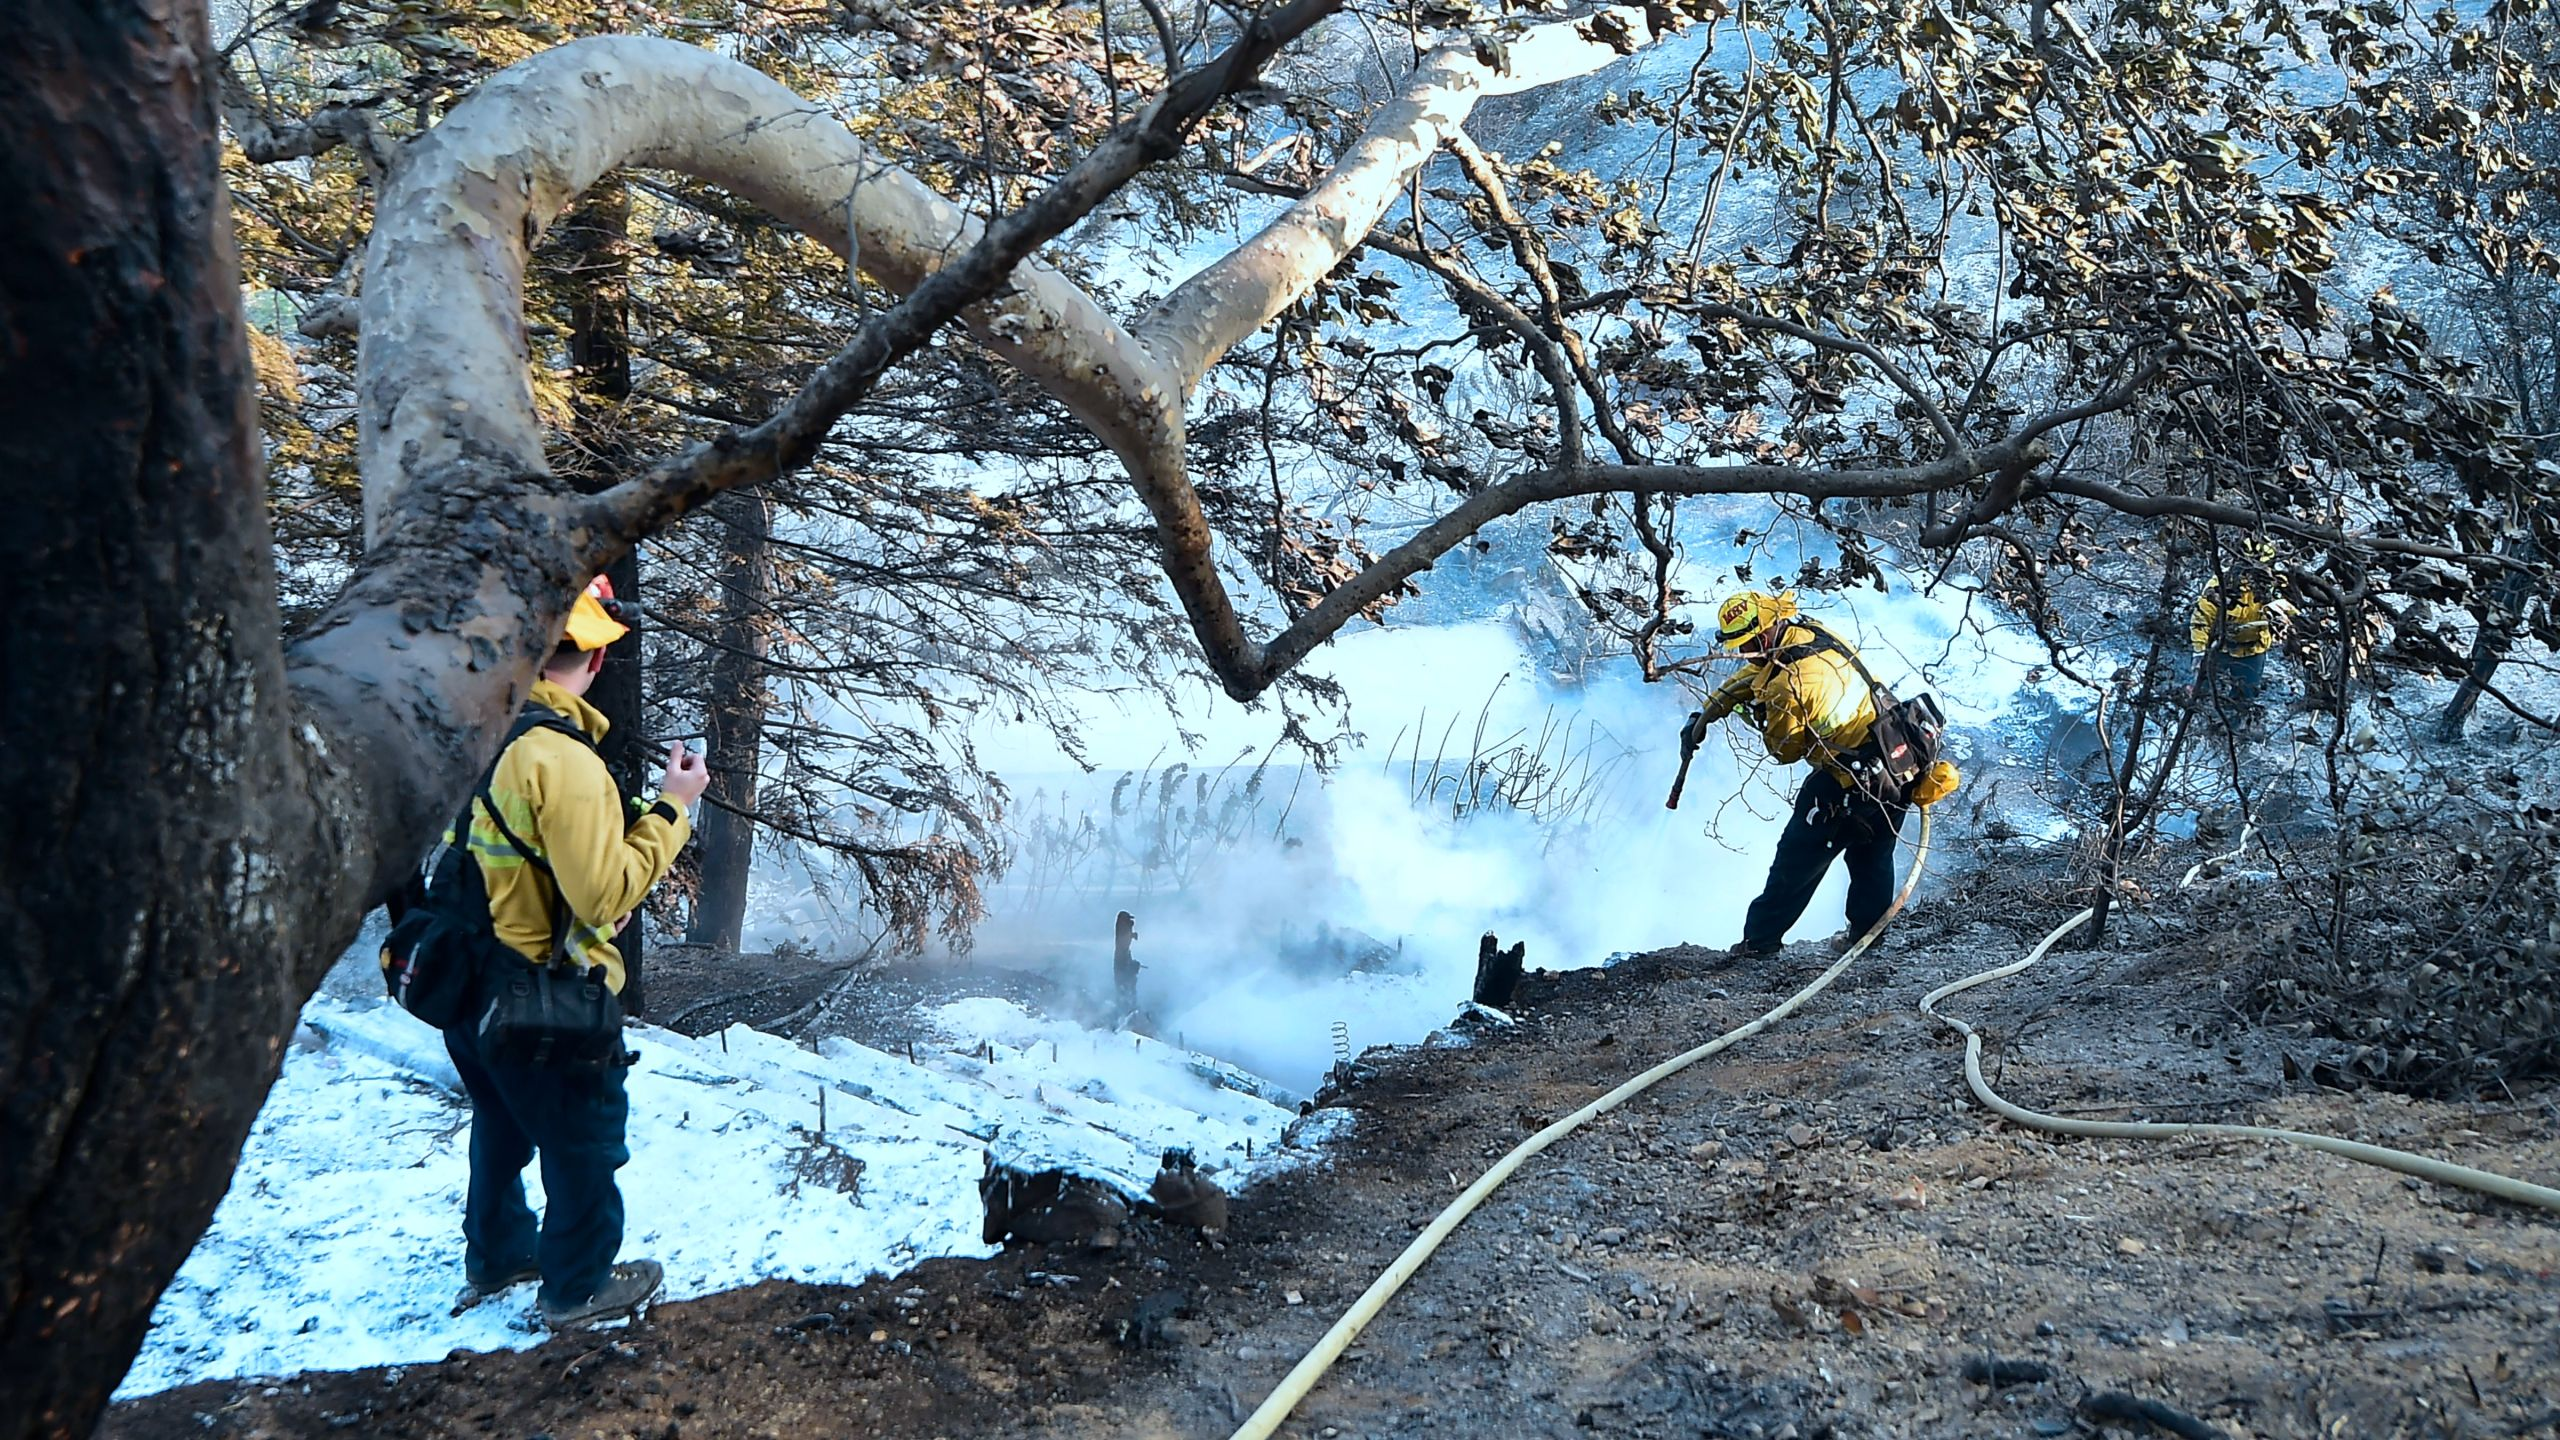 Firefighters spray foam on hot embers along a hillside near homes on Latigo Canyon Road in Malibu on Nov.10, 2018. (Credit: FREDERIC J. BROWN/AFP/Getty Images)